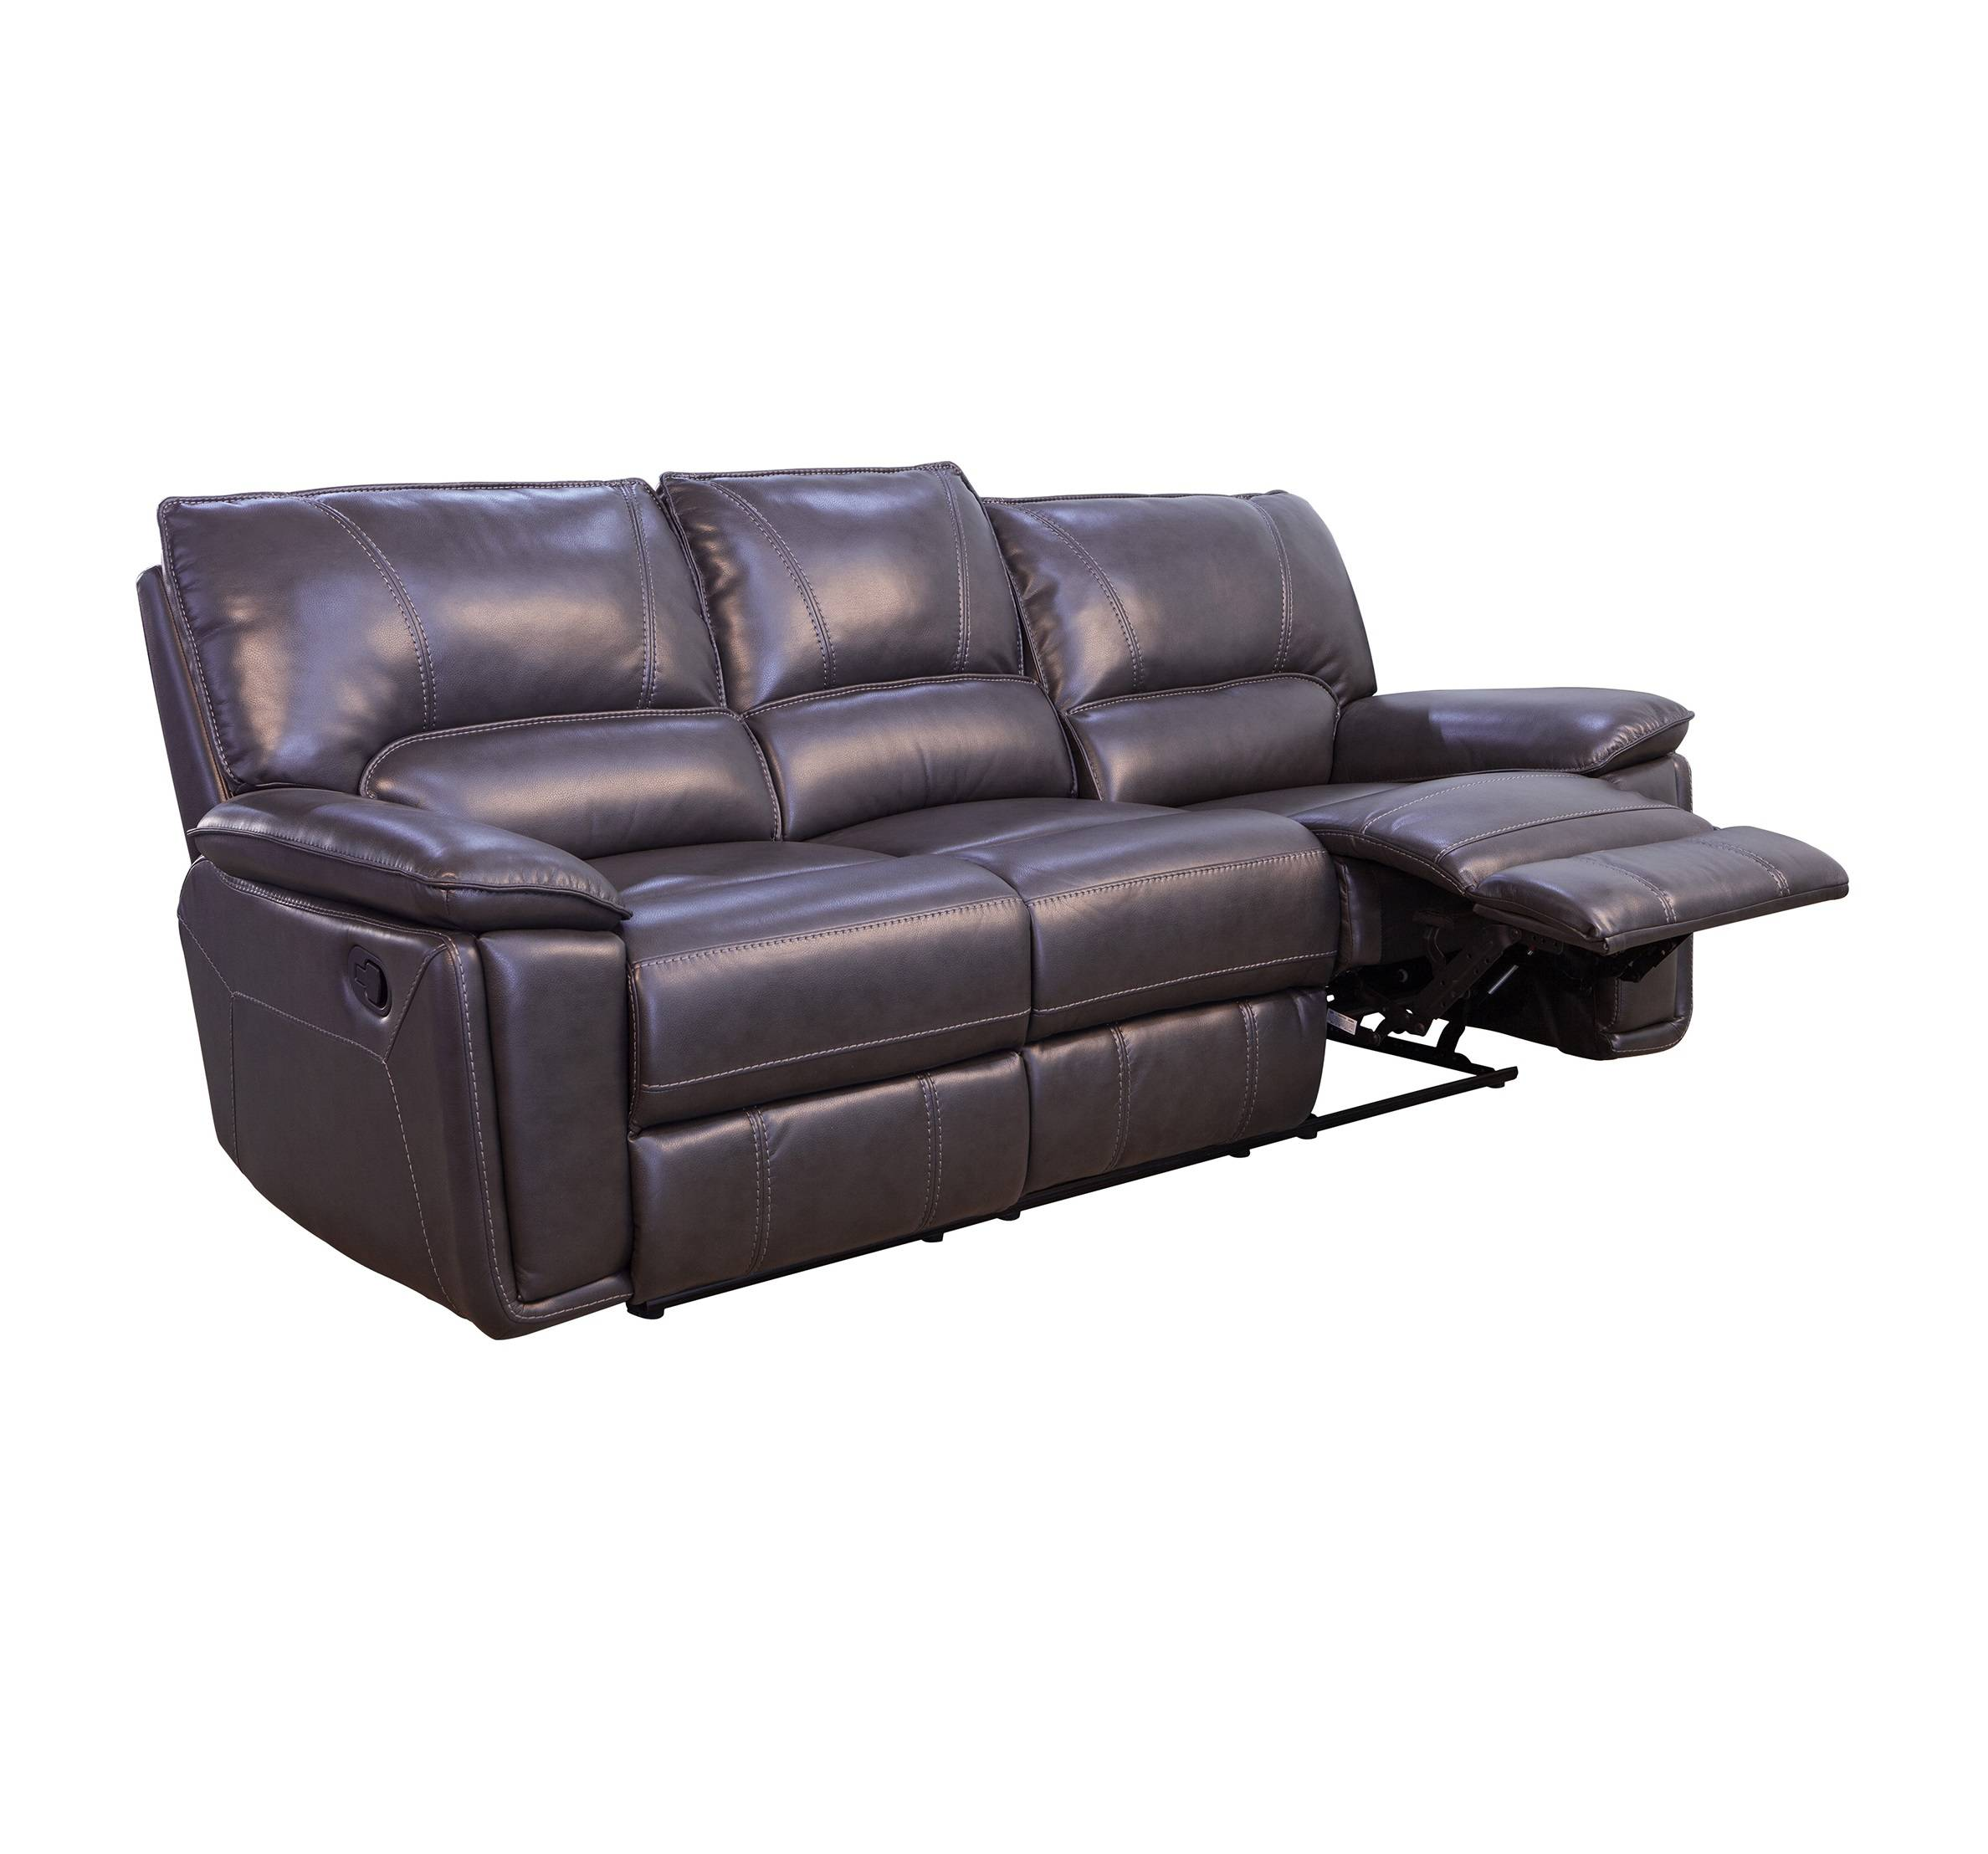 Luxury leather sofa set 1 2 3 massage zero gravity recliner